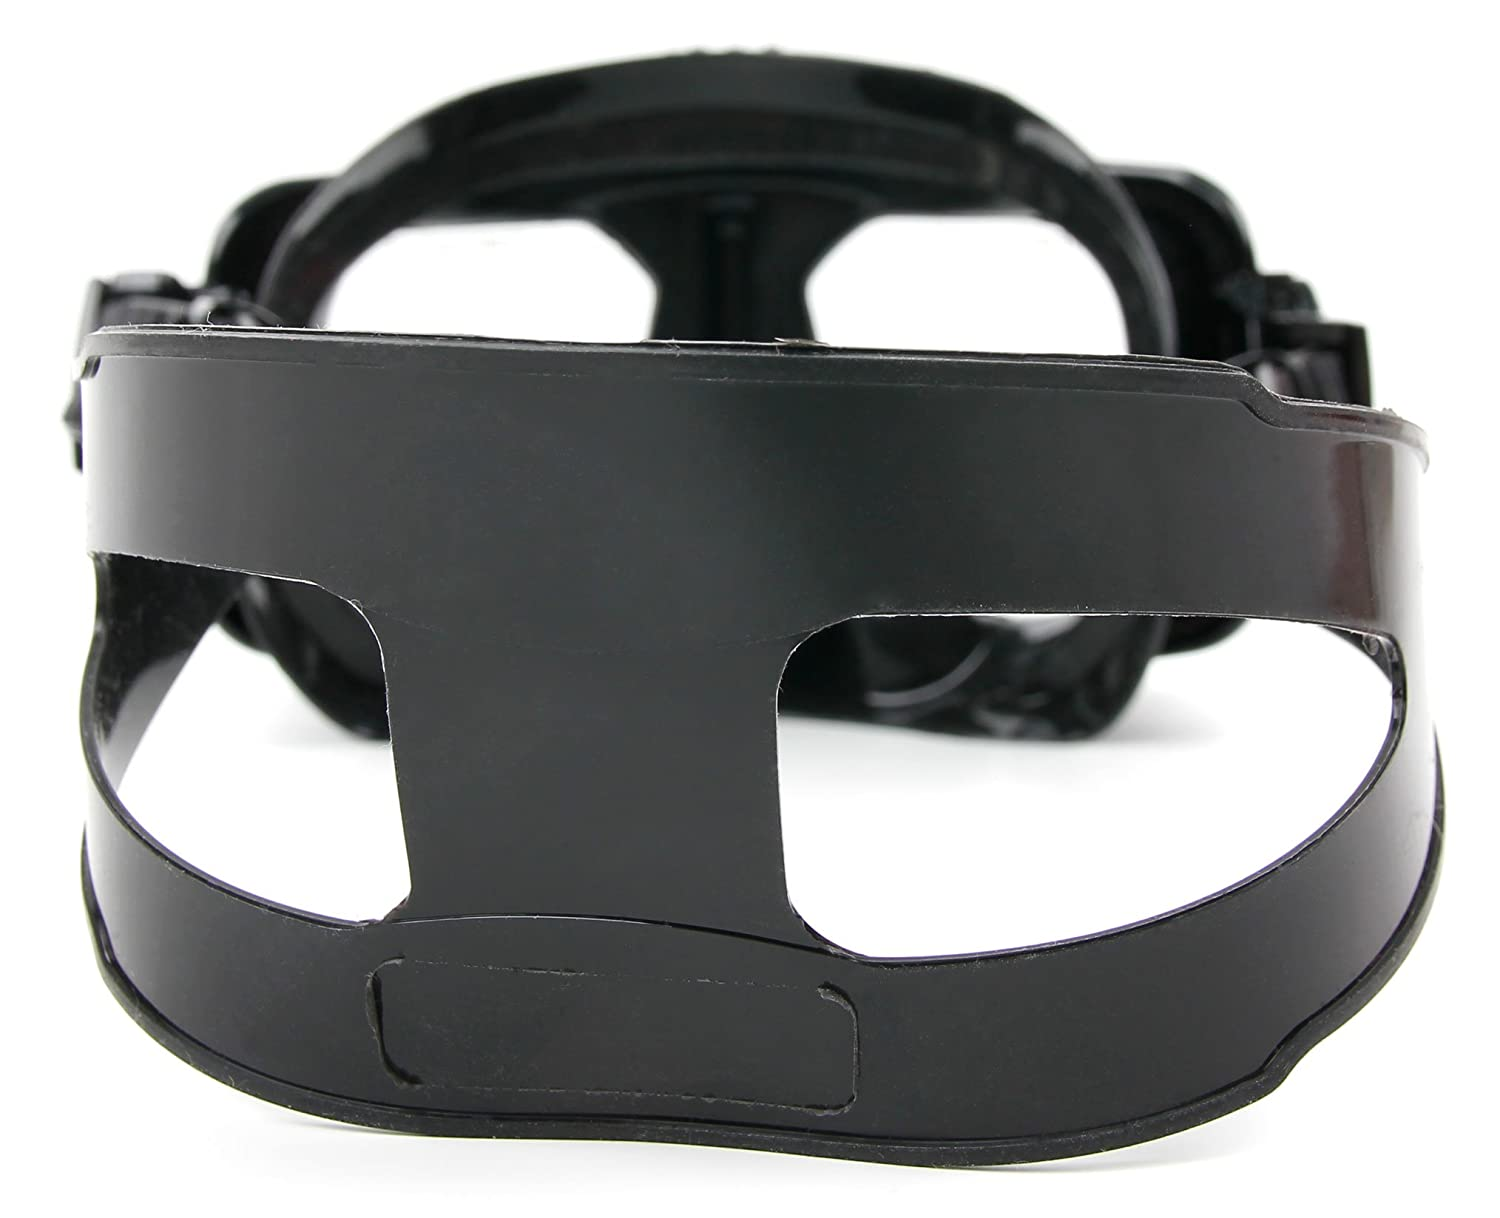 DURAGADGET Underwater Diving Goggles with Mount for the Intova Sport Pro HD Video Camera